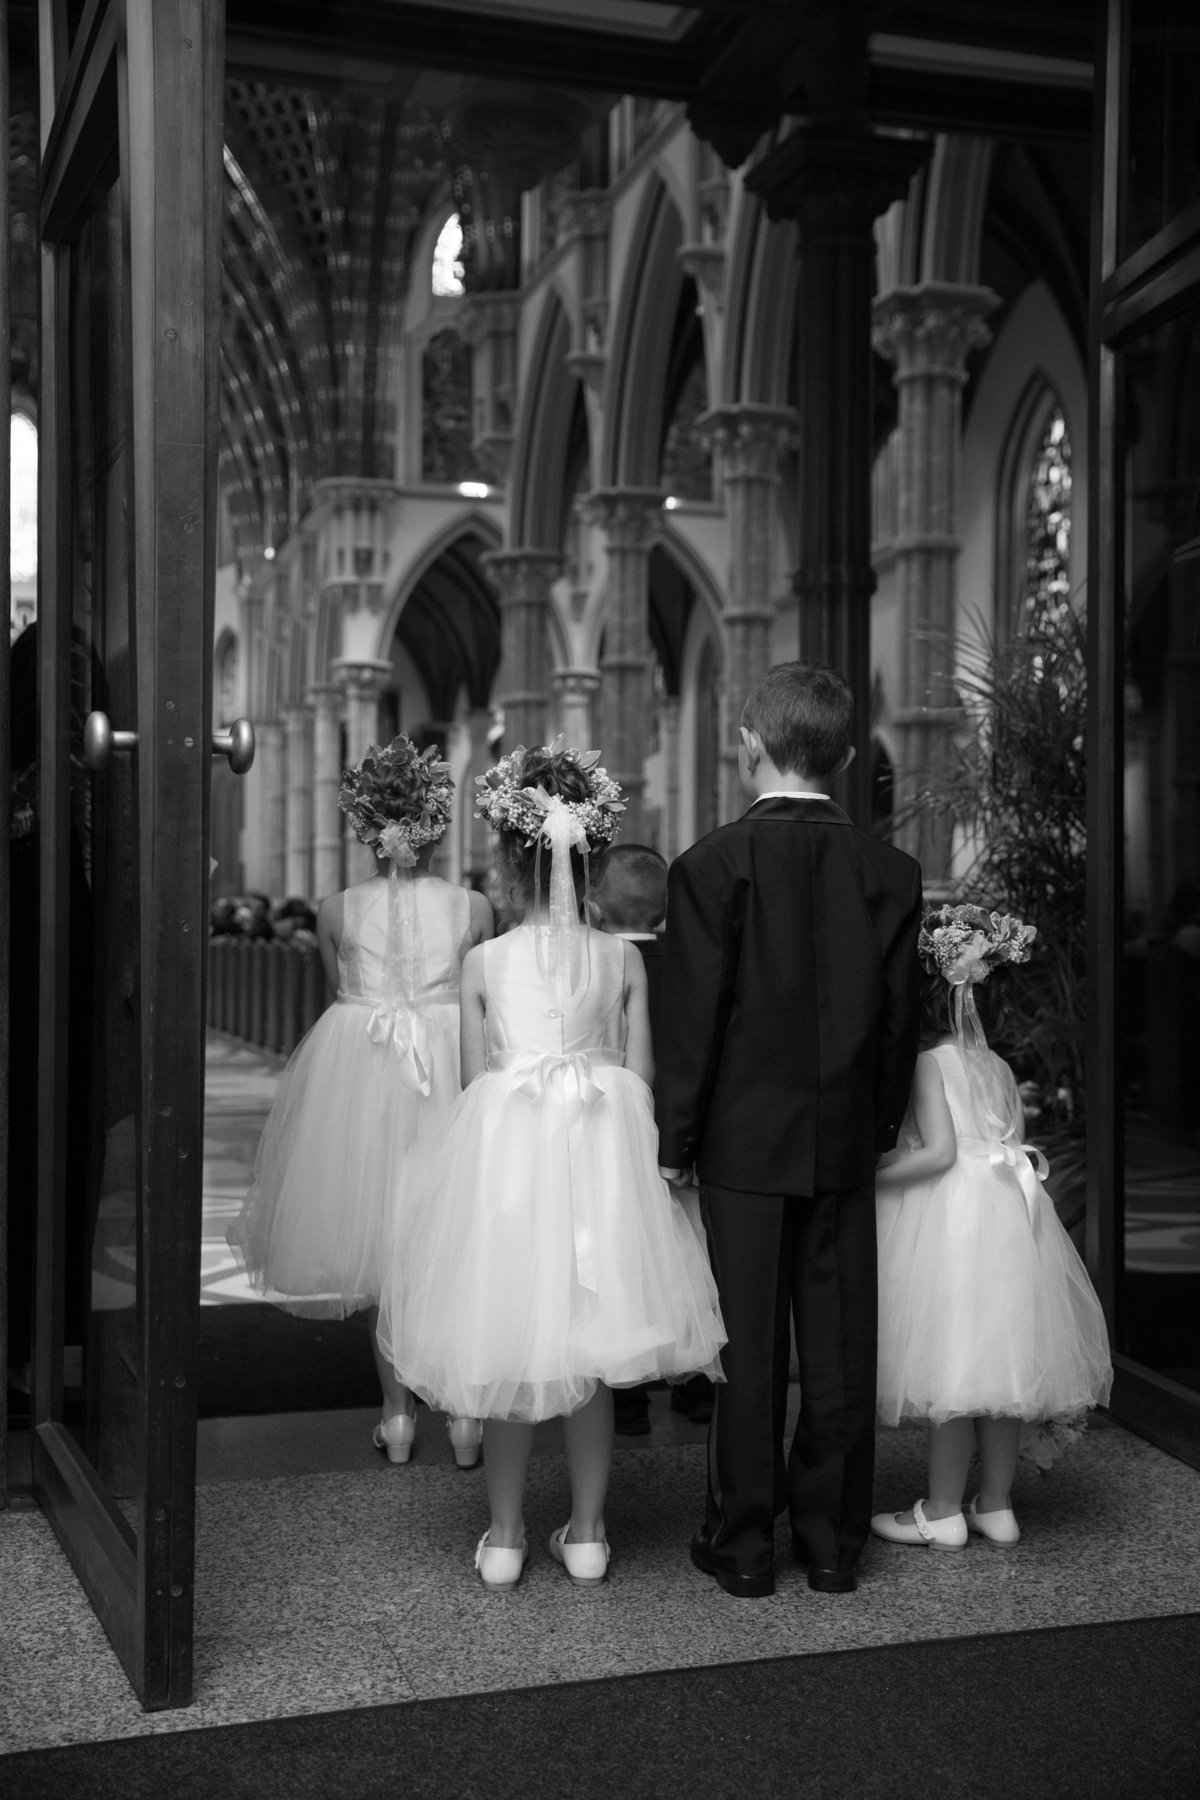 Nicole and Paul Wedding - Natalie Probst Photography 196